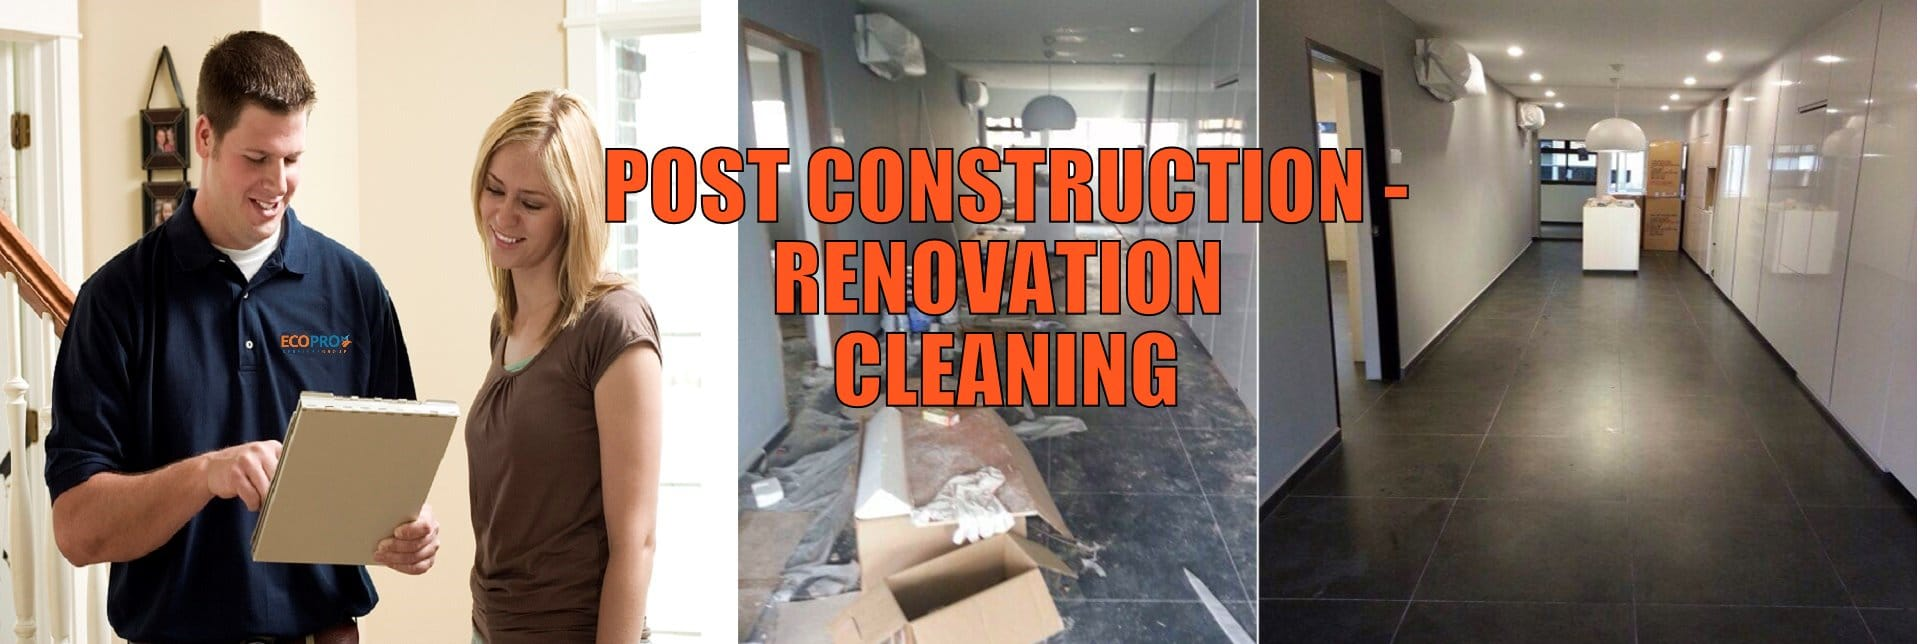 Post Construction cleanup ottawa